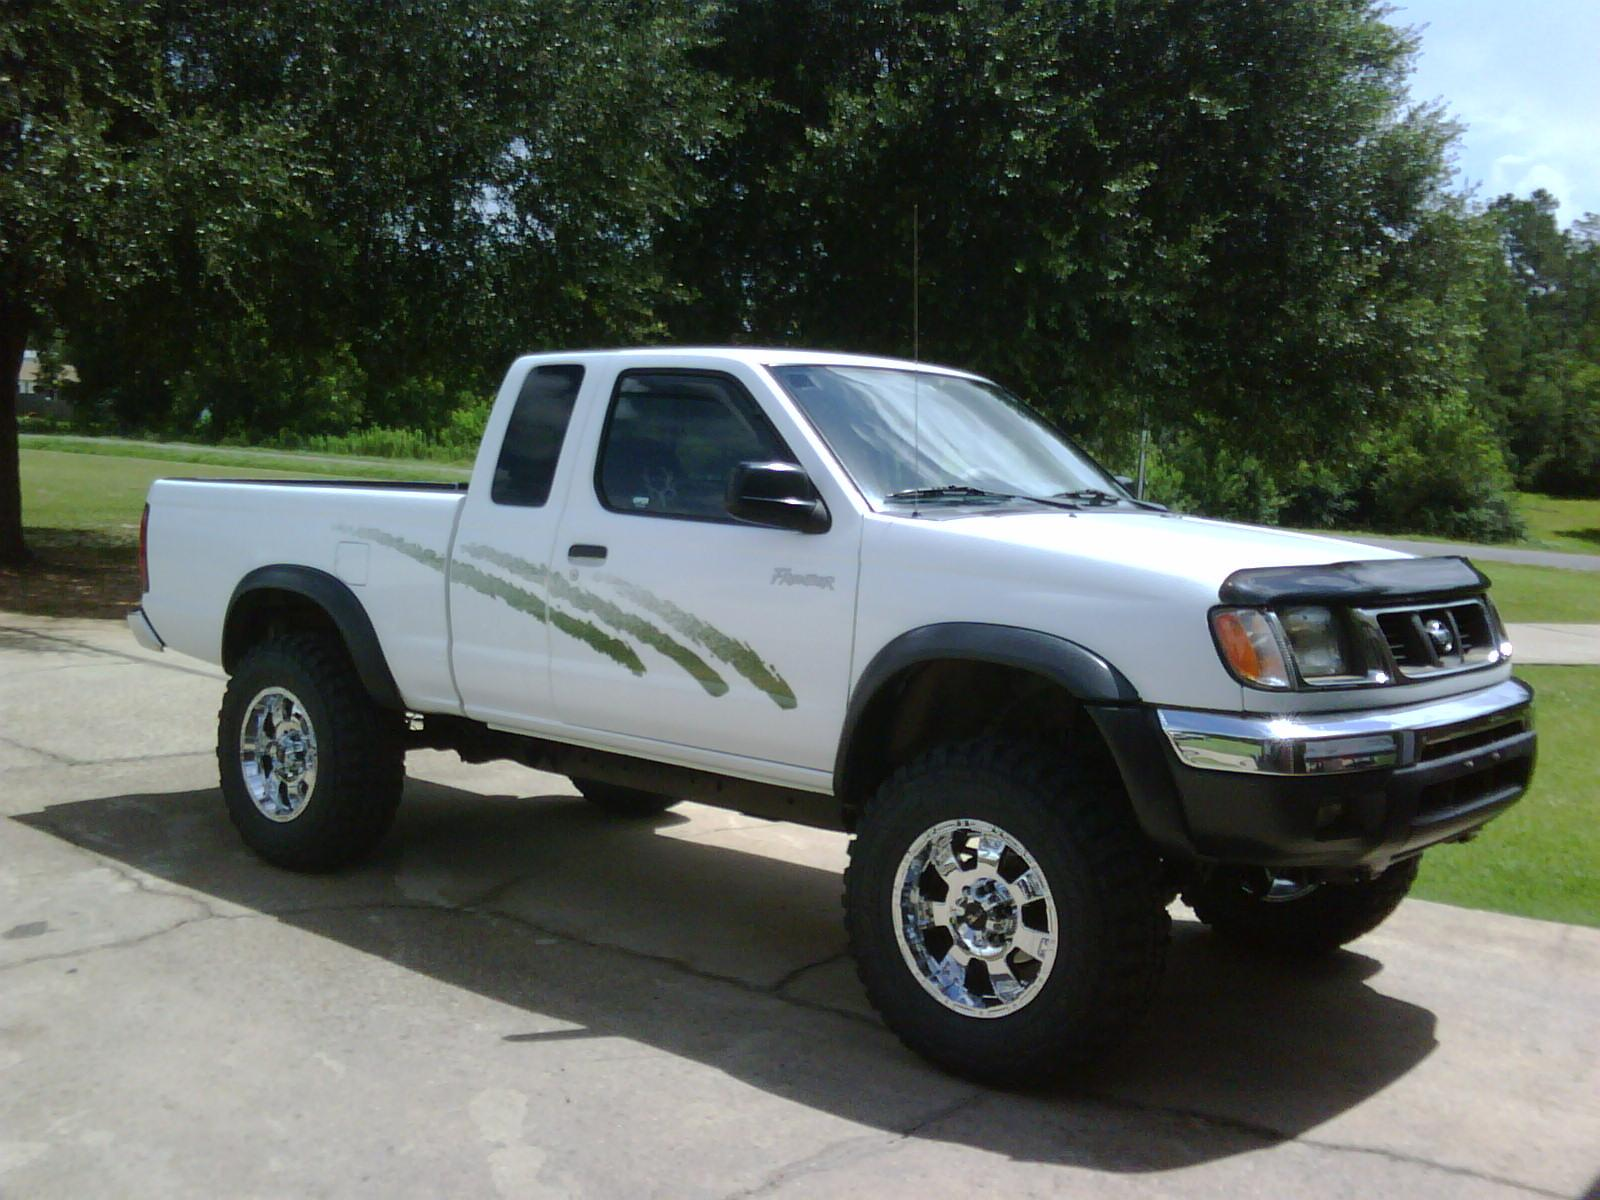 thayotaon22s 2001 toyota tacoma regular cab specs photos modification info at cardomain. Black Bedroom Furniture Sets. Home Design Ideas